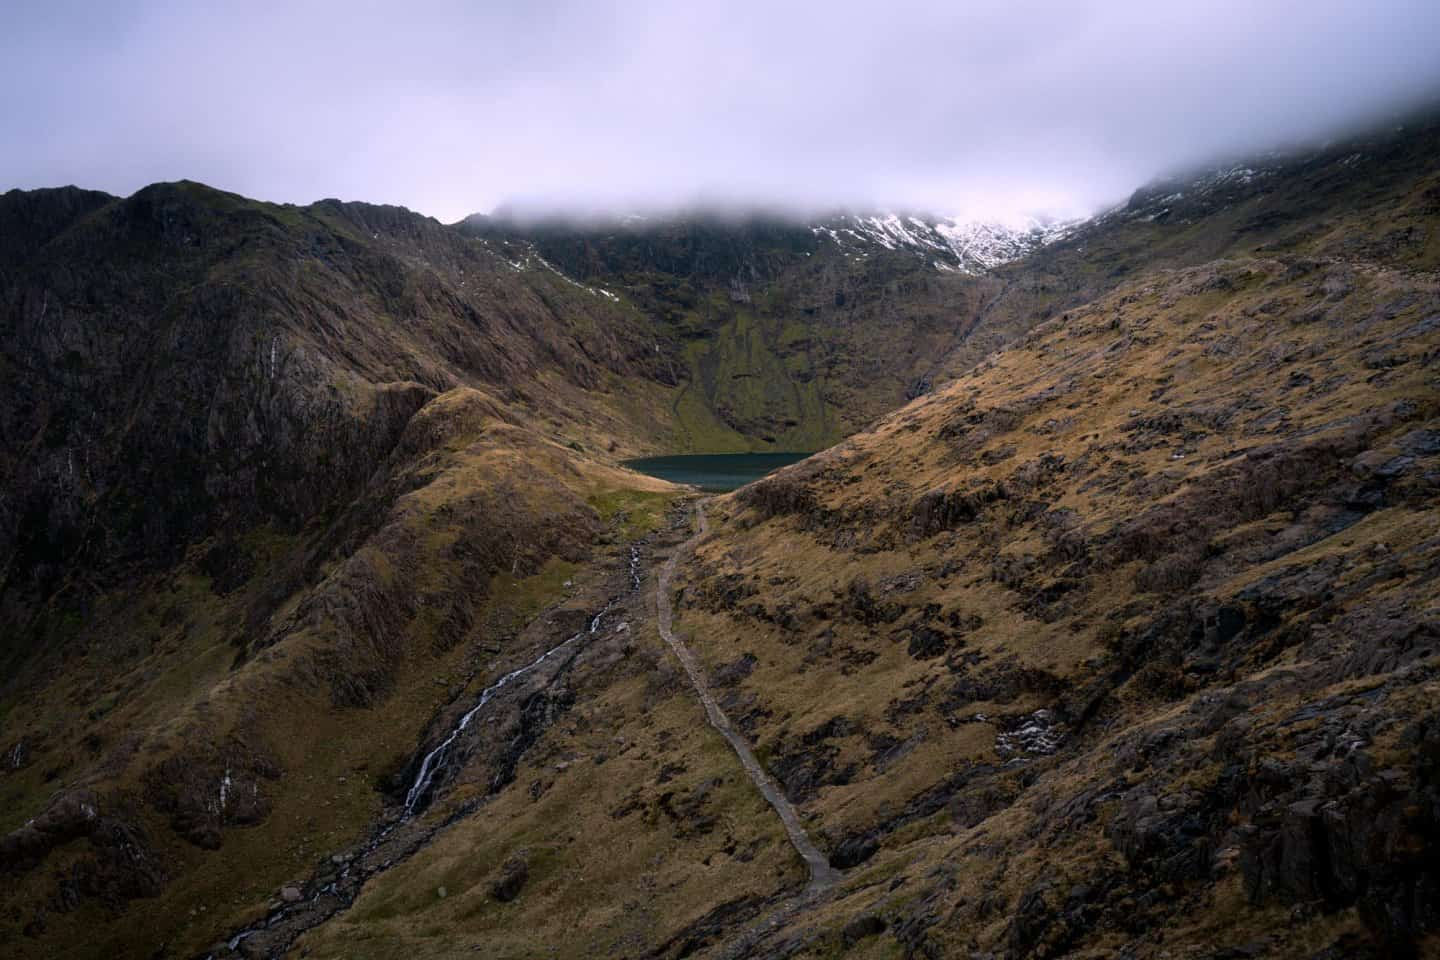 Snowdon Peak is one of the premier destinations for Snowdonia photography.